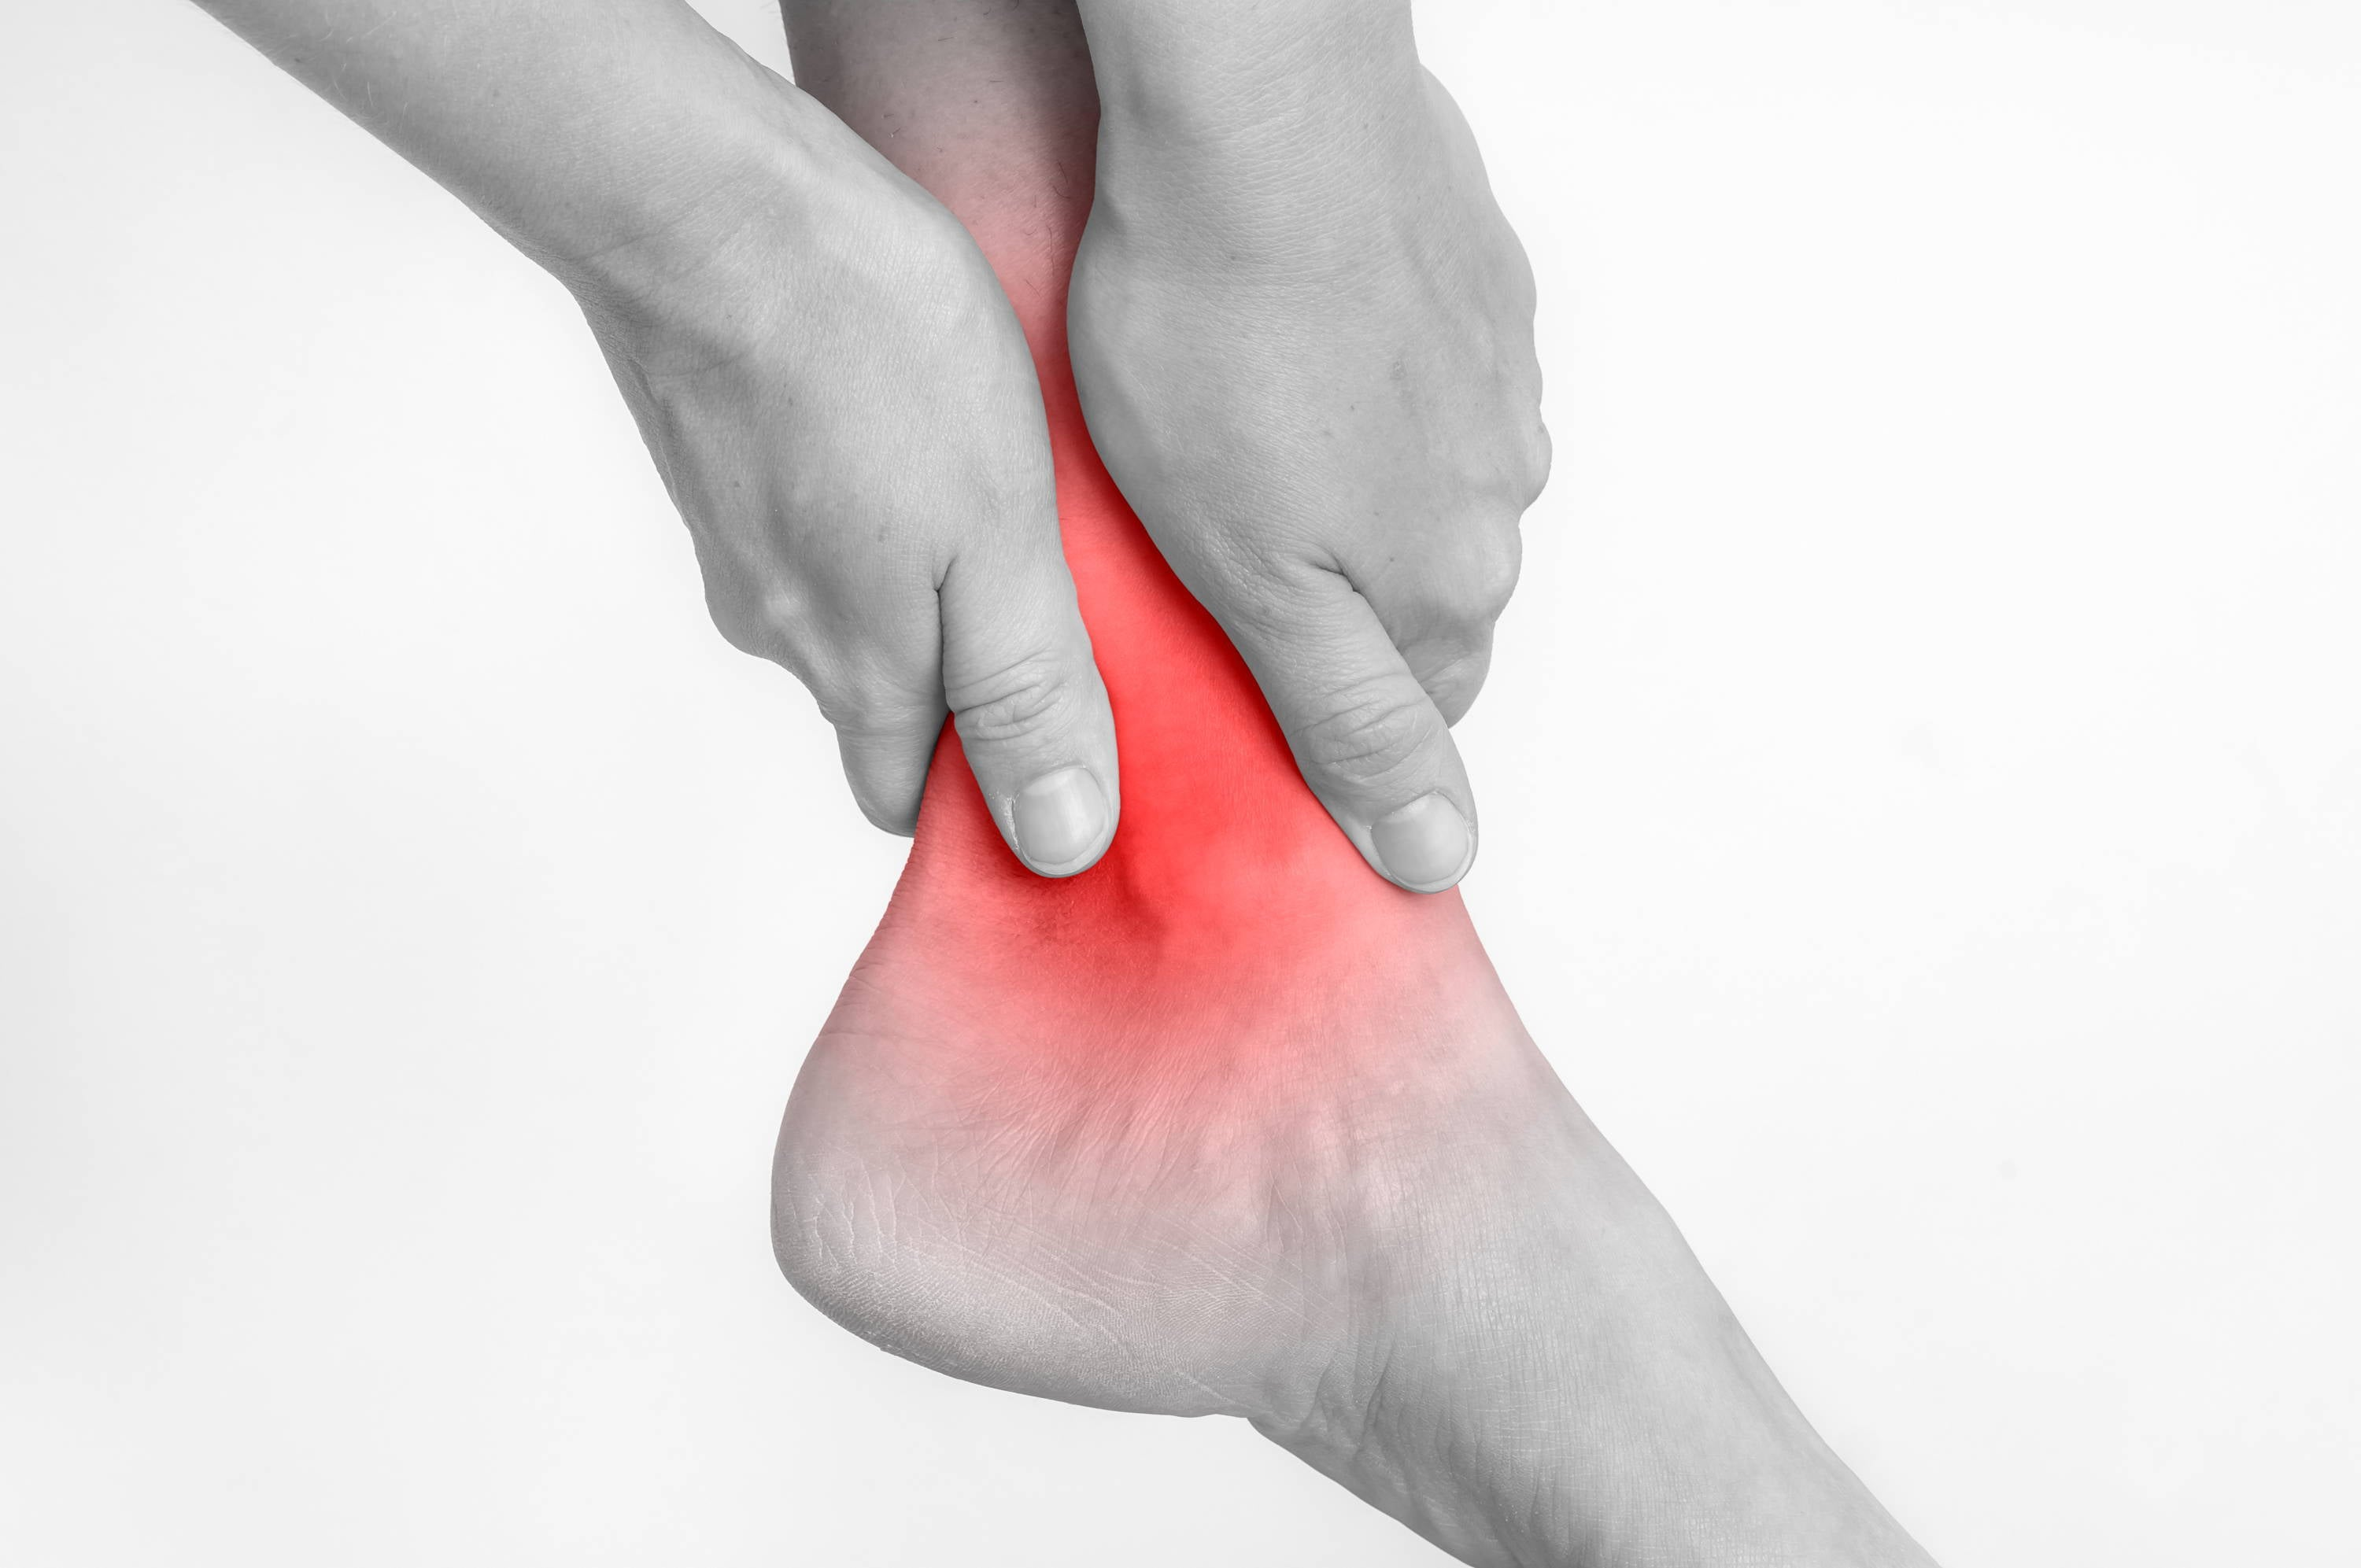 Ankle sprain advice